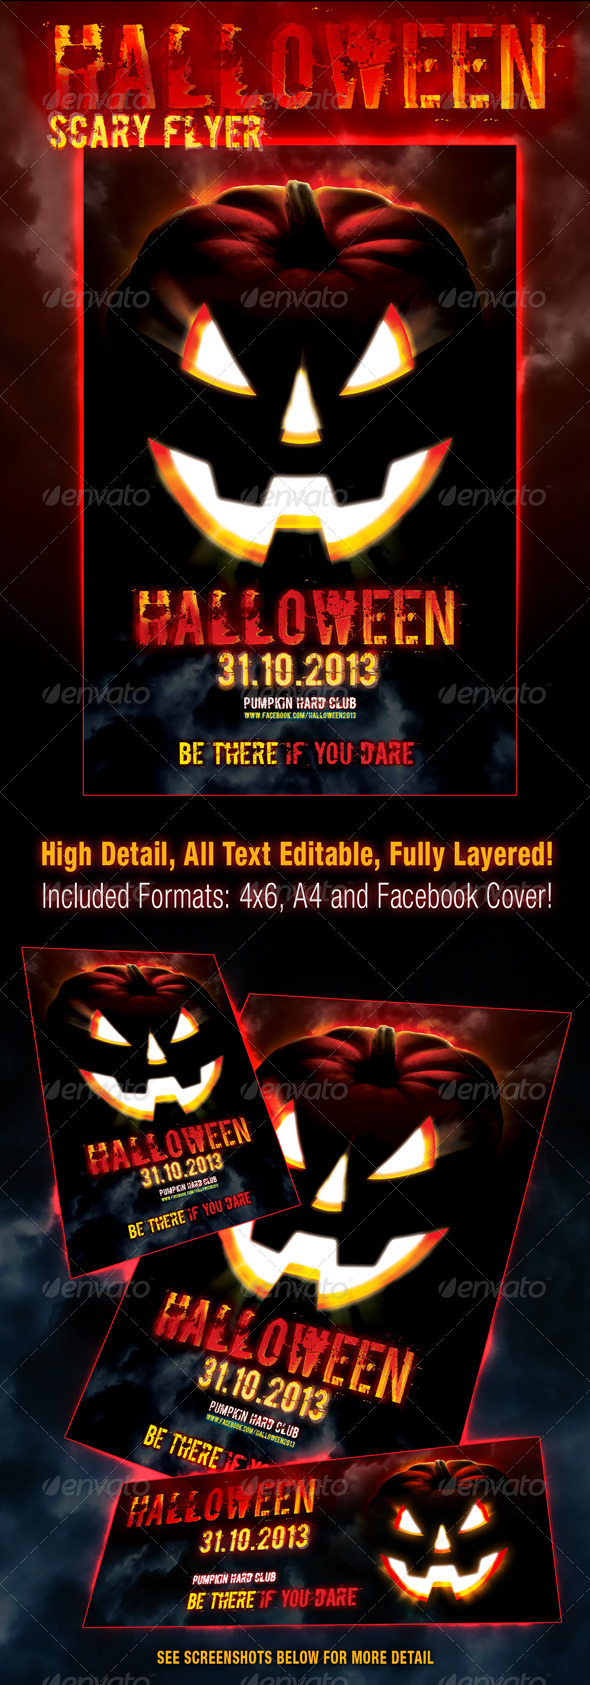 Halloween Scary Flyer - Events Flyers